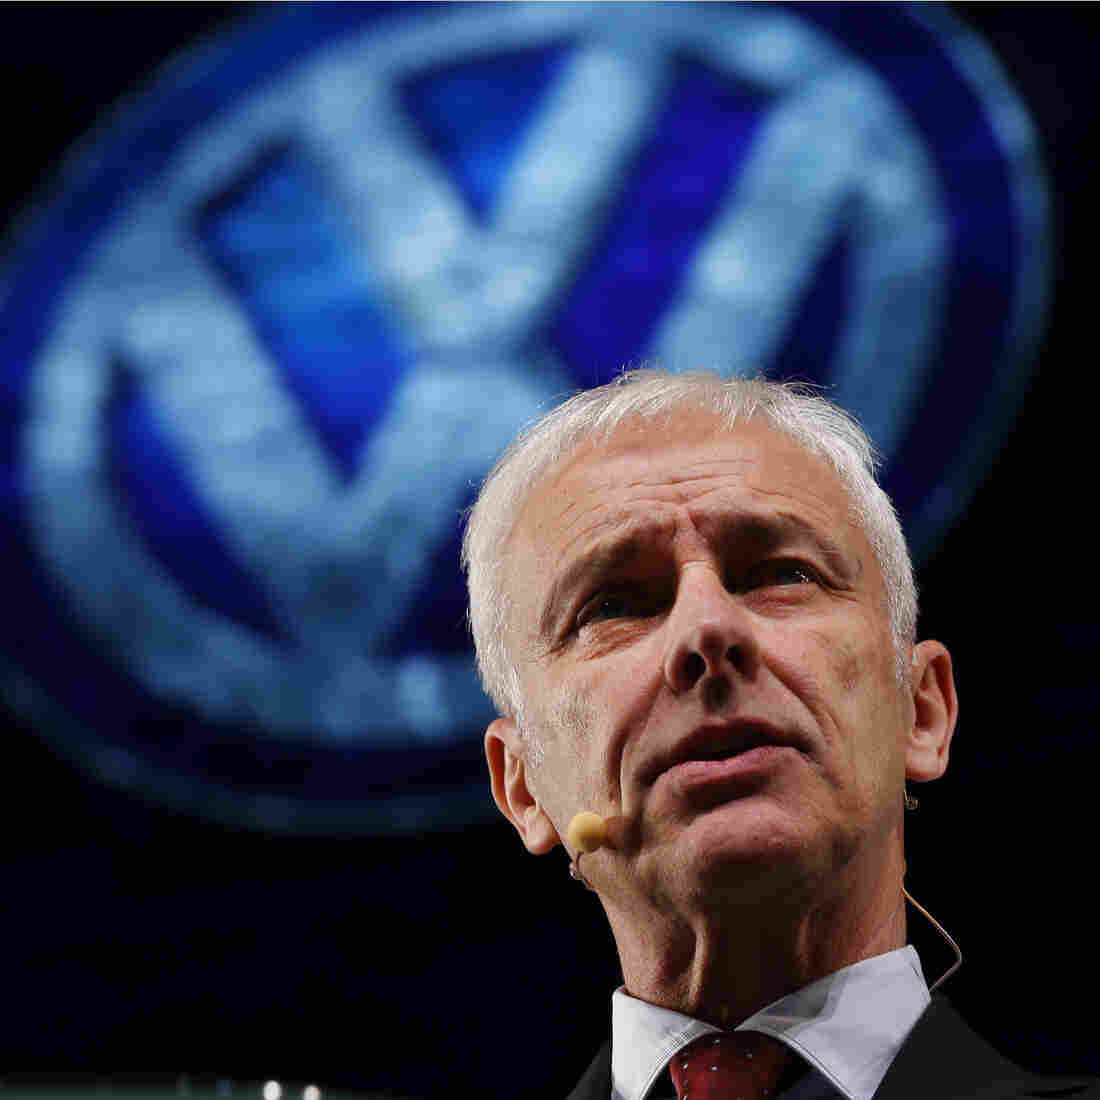 'We Didn't Lie,' Volkswagen CEO Says Of Emissions Scandal